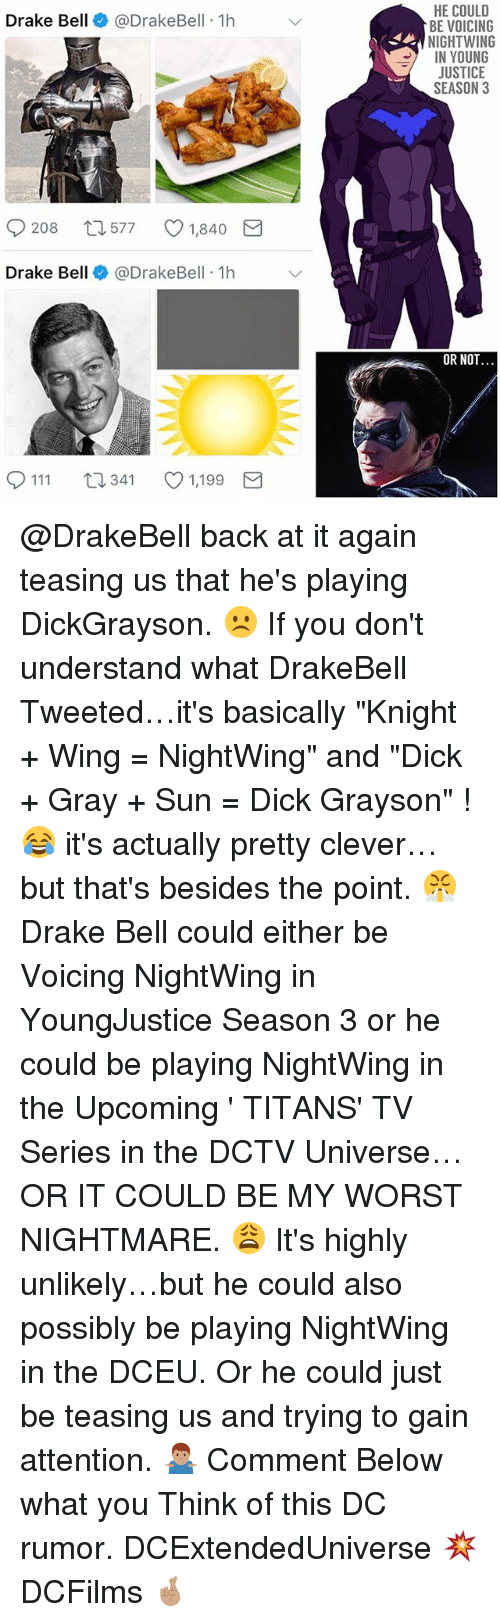 """Drake, Drake Bell, and Memes: HE COULD  BE VOICING  NIGHTWING  IN YOUNG  JUSTICE  SEASON 3  Drake Bell@DrakeBell 1h  208  577  1,840  Drake Bell @DrakeBell 1h  OR NOT  0111 t  341 1,199 @DrakeBell back at it again teasing us that he's playing DickGrayson. ☹️ If you don't understand what DrakeBell Tweeted…it's basically """"Knight + Wing = NightWing"""" and """"Dick + Gray + Sun = Dick Grayson"""" ! 😂 it's actually pretty clever…but that's besides the point. 😤 Drake Bell could either be Voicing NightWing in YoungJustice Season 3 or he could be playing NightWing in the Upcoming ' TITANS' TV Series in the DCTV Universe…OR IT COULD BE MY WORST NIGHTMARE. 😩 It's highly unlikely…but he could also possibly be playing NightWing in the DCEU. Or he could just be teasing us and trying to gain attention. 🤷🏽♂️ Comment Below what you Think of this DC rumor. DCExtendedUniverse 💥 DCFilms 🤞🏽"""